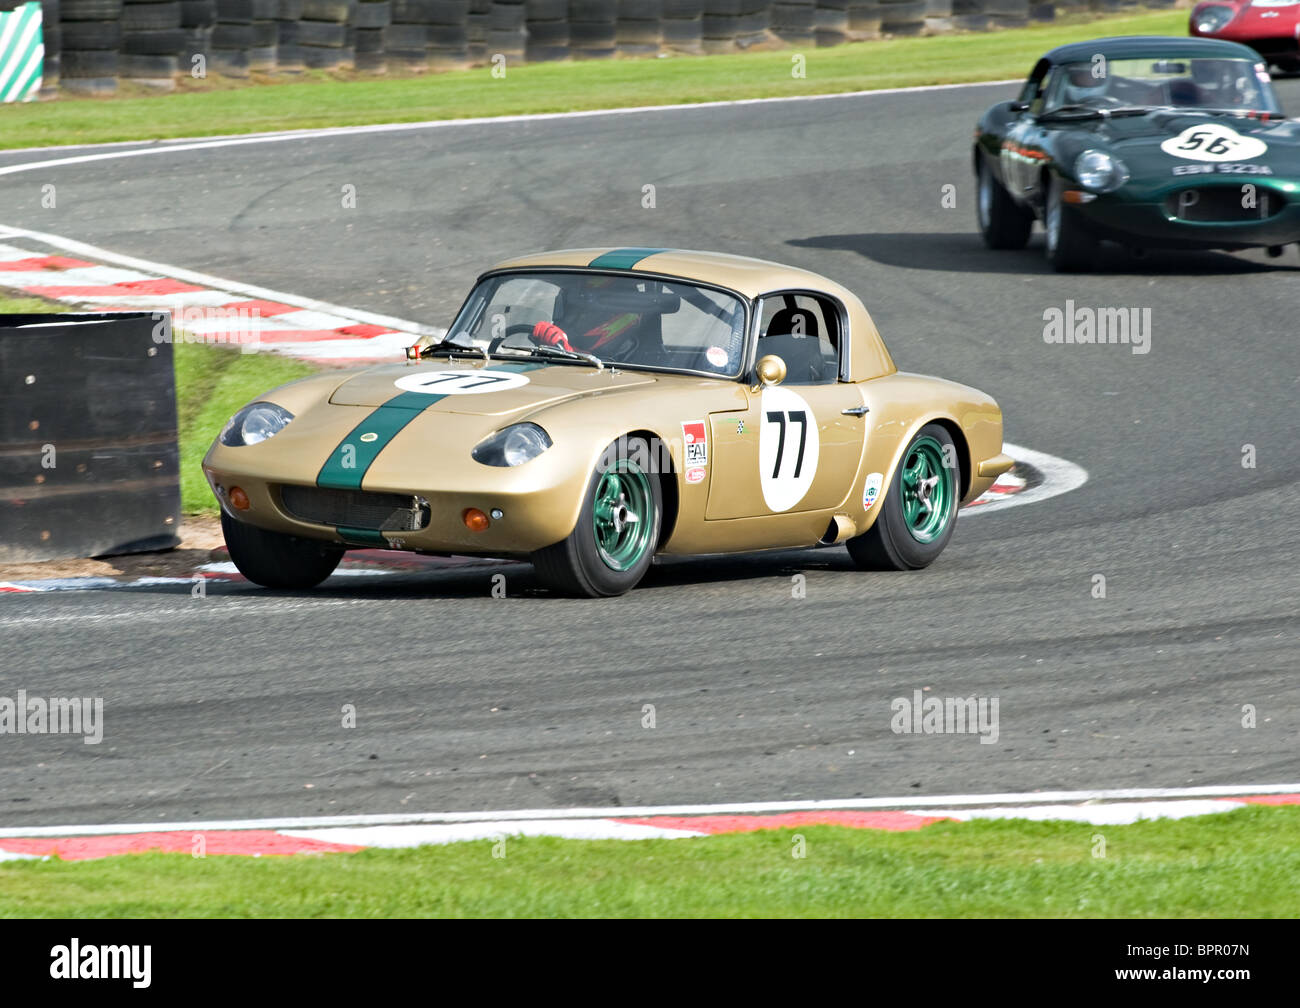 Lotus Elan Followed by an E Type Jaguar Race Cars Negotiate ...